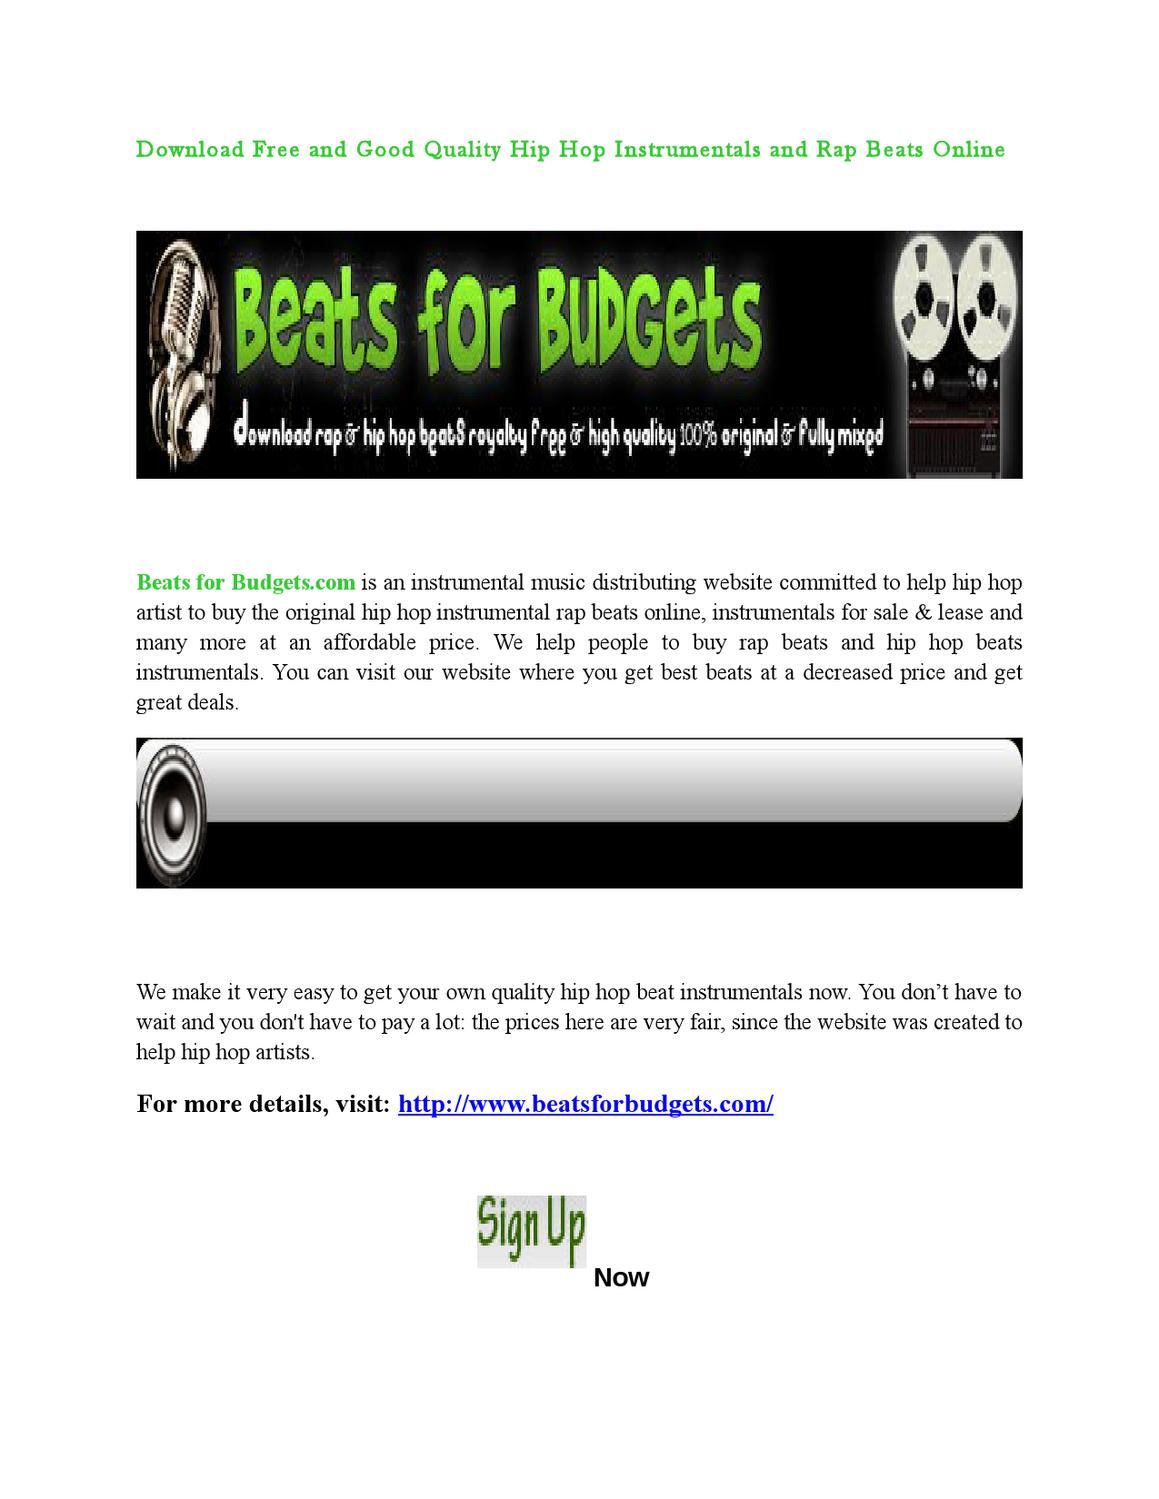 Download Free and Good Quality Hip Hop Instrumentals and Rap Beats Online